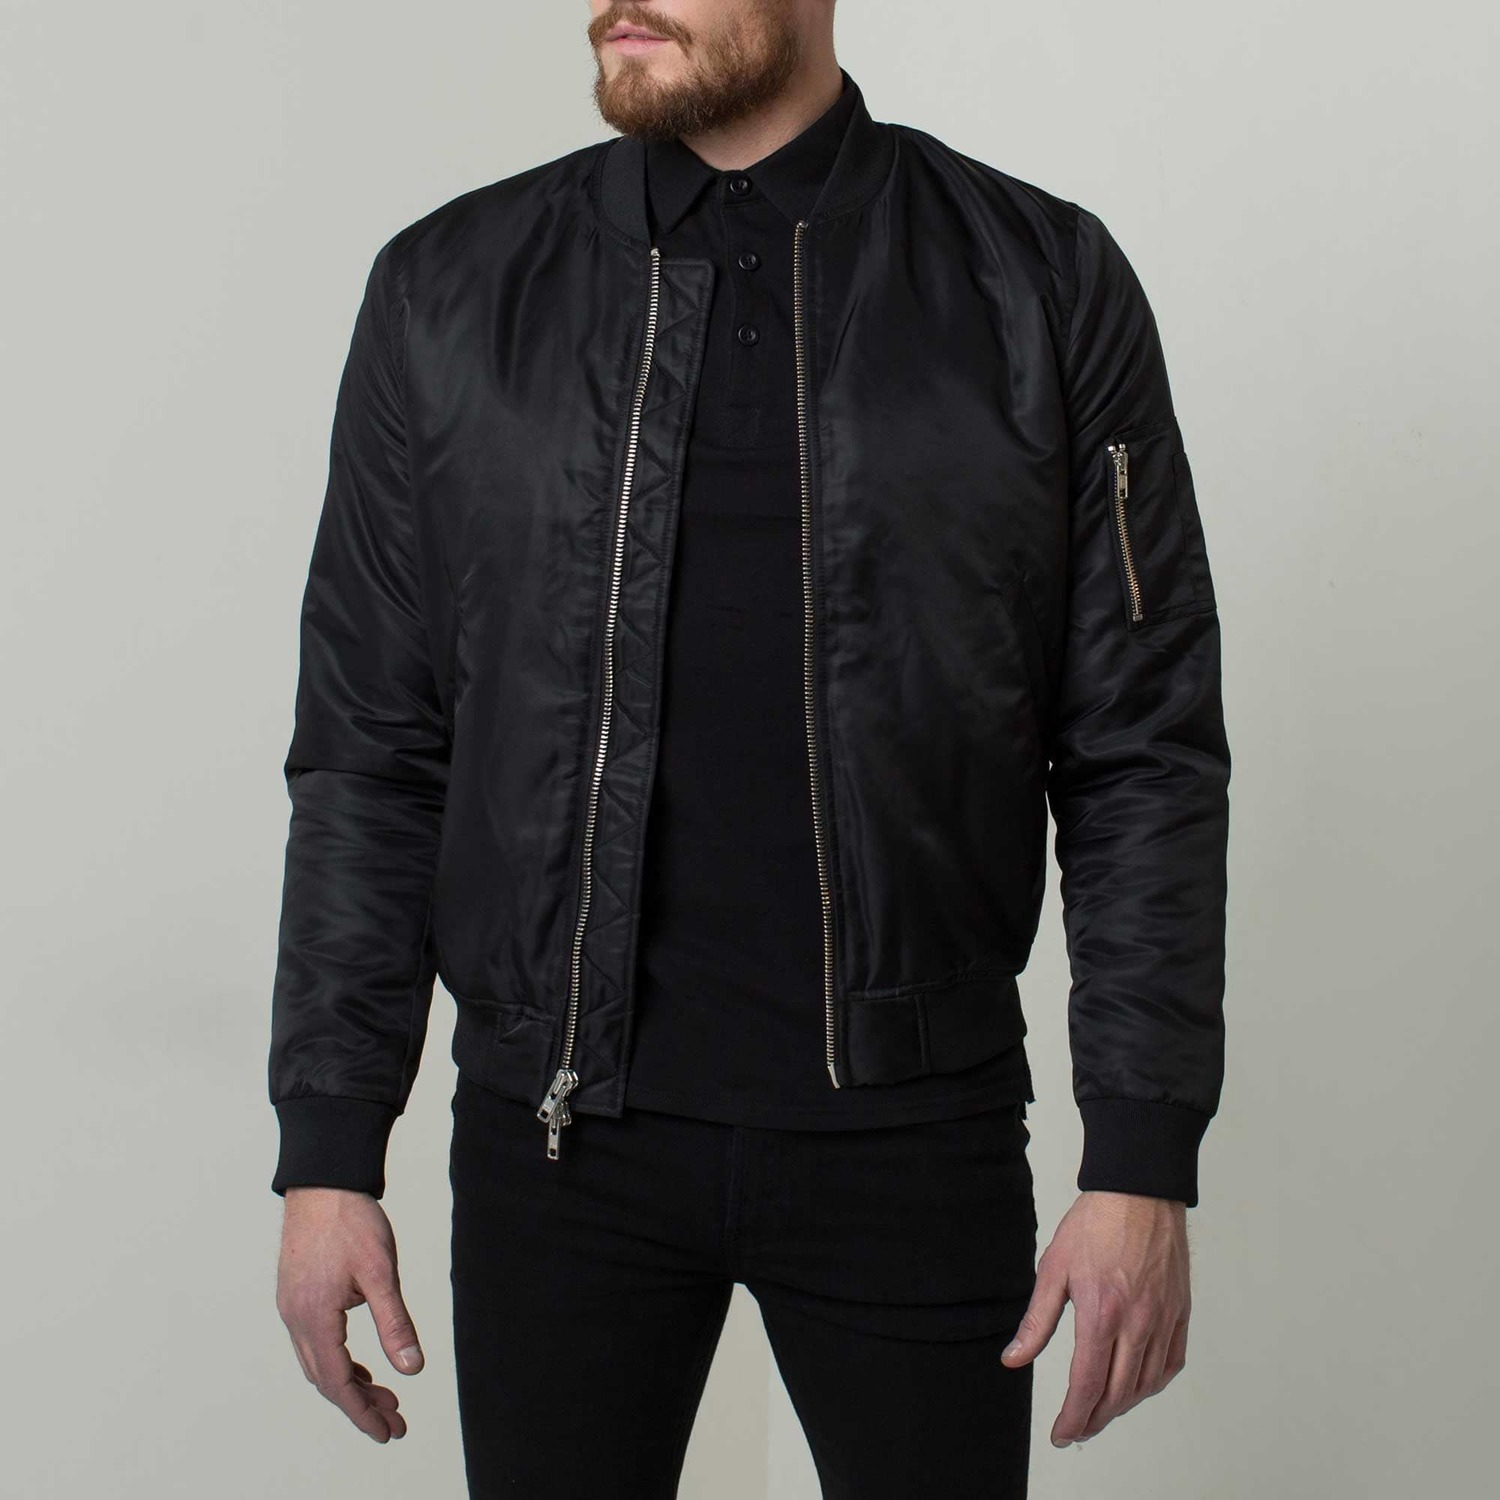 Mens Nylon Bomber Jacket With Silver Zippers In Black $135 | DSTLD